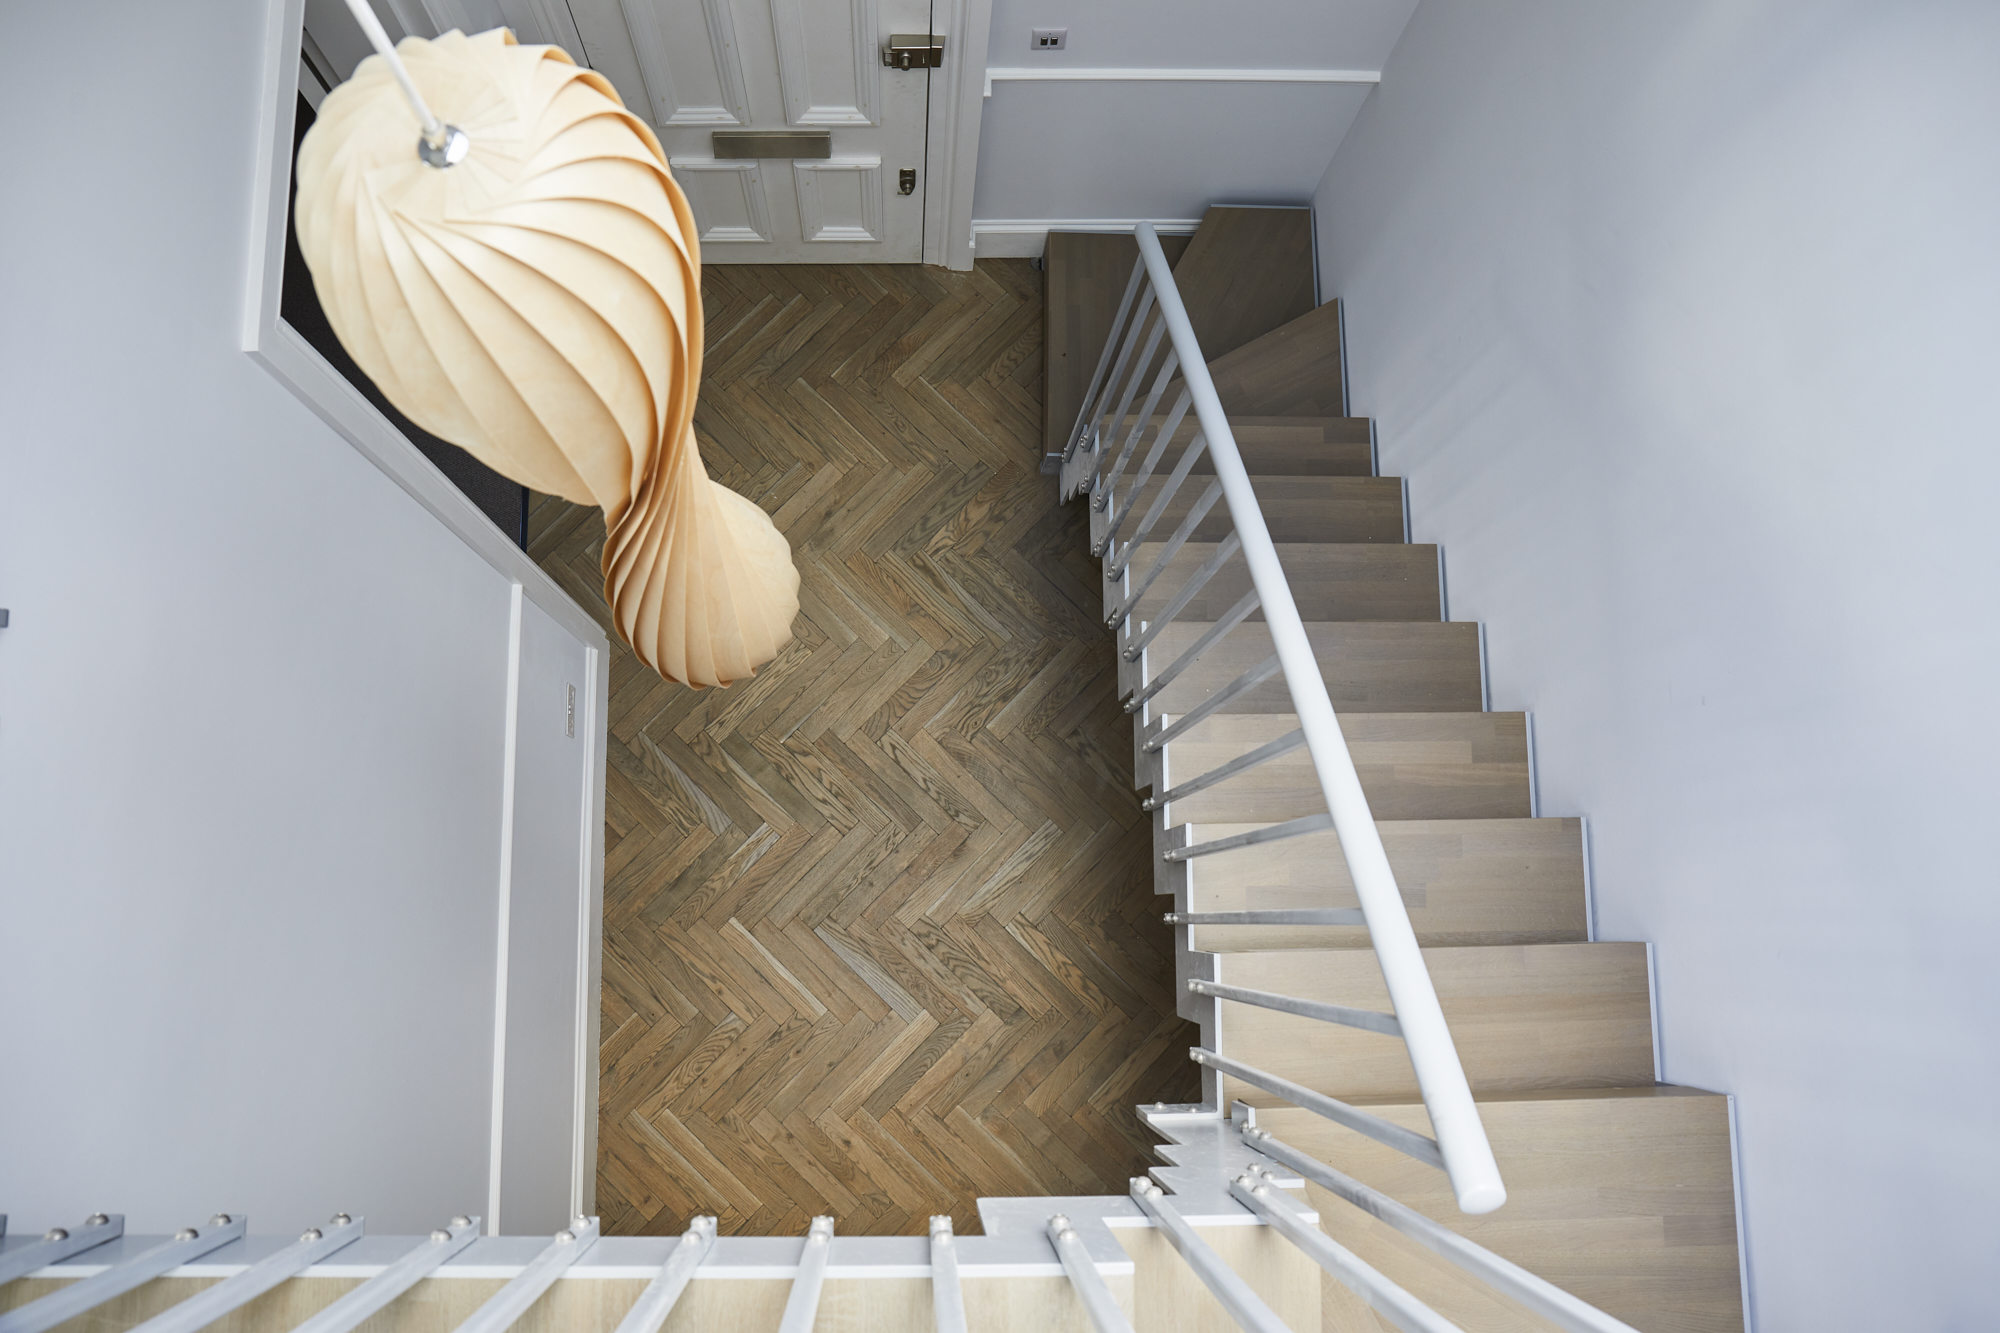 BPM33-Victorian-Penthouse-London-Chiswick-Staircase-Pendant-Herringbone-Parquet-from-Upstairs_scaled_Y